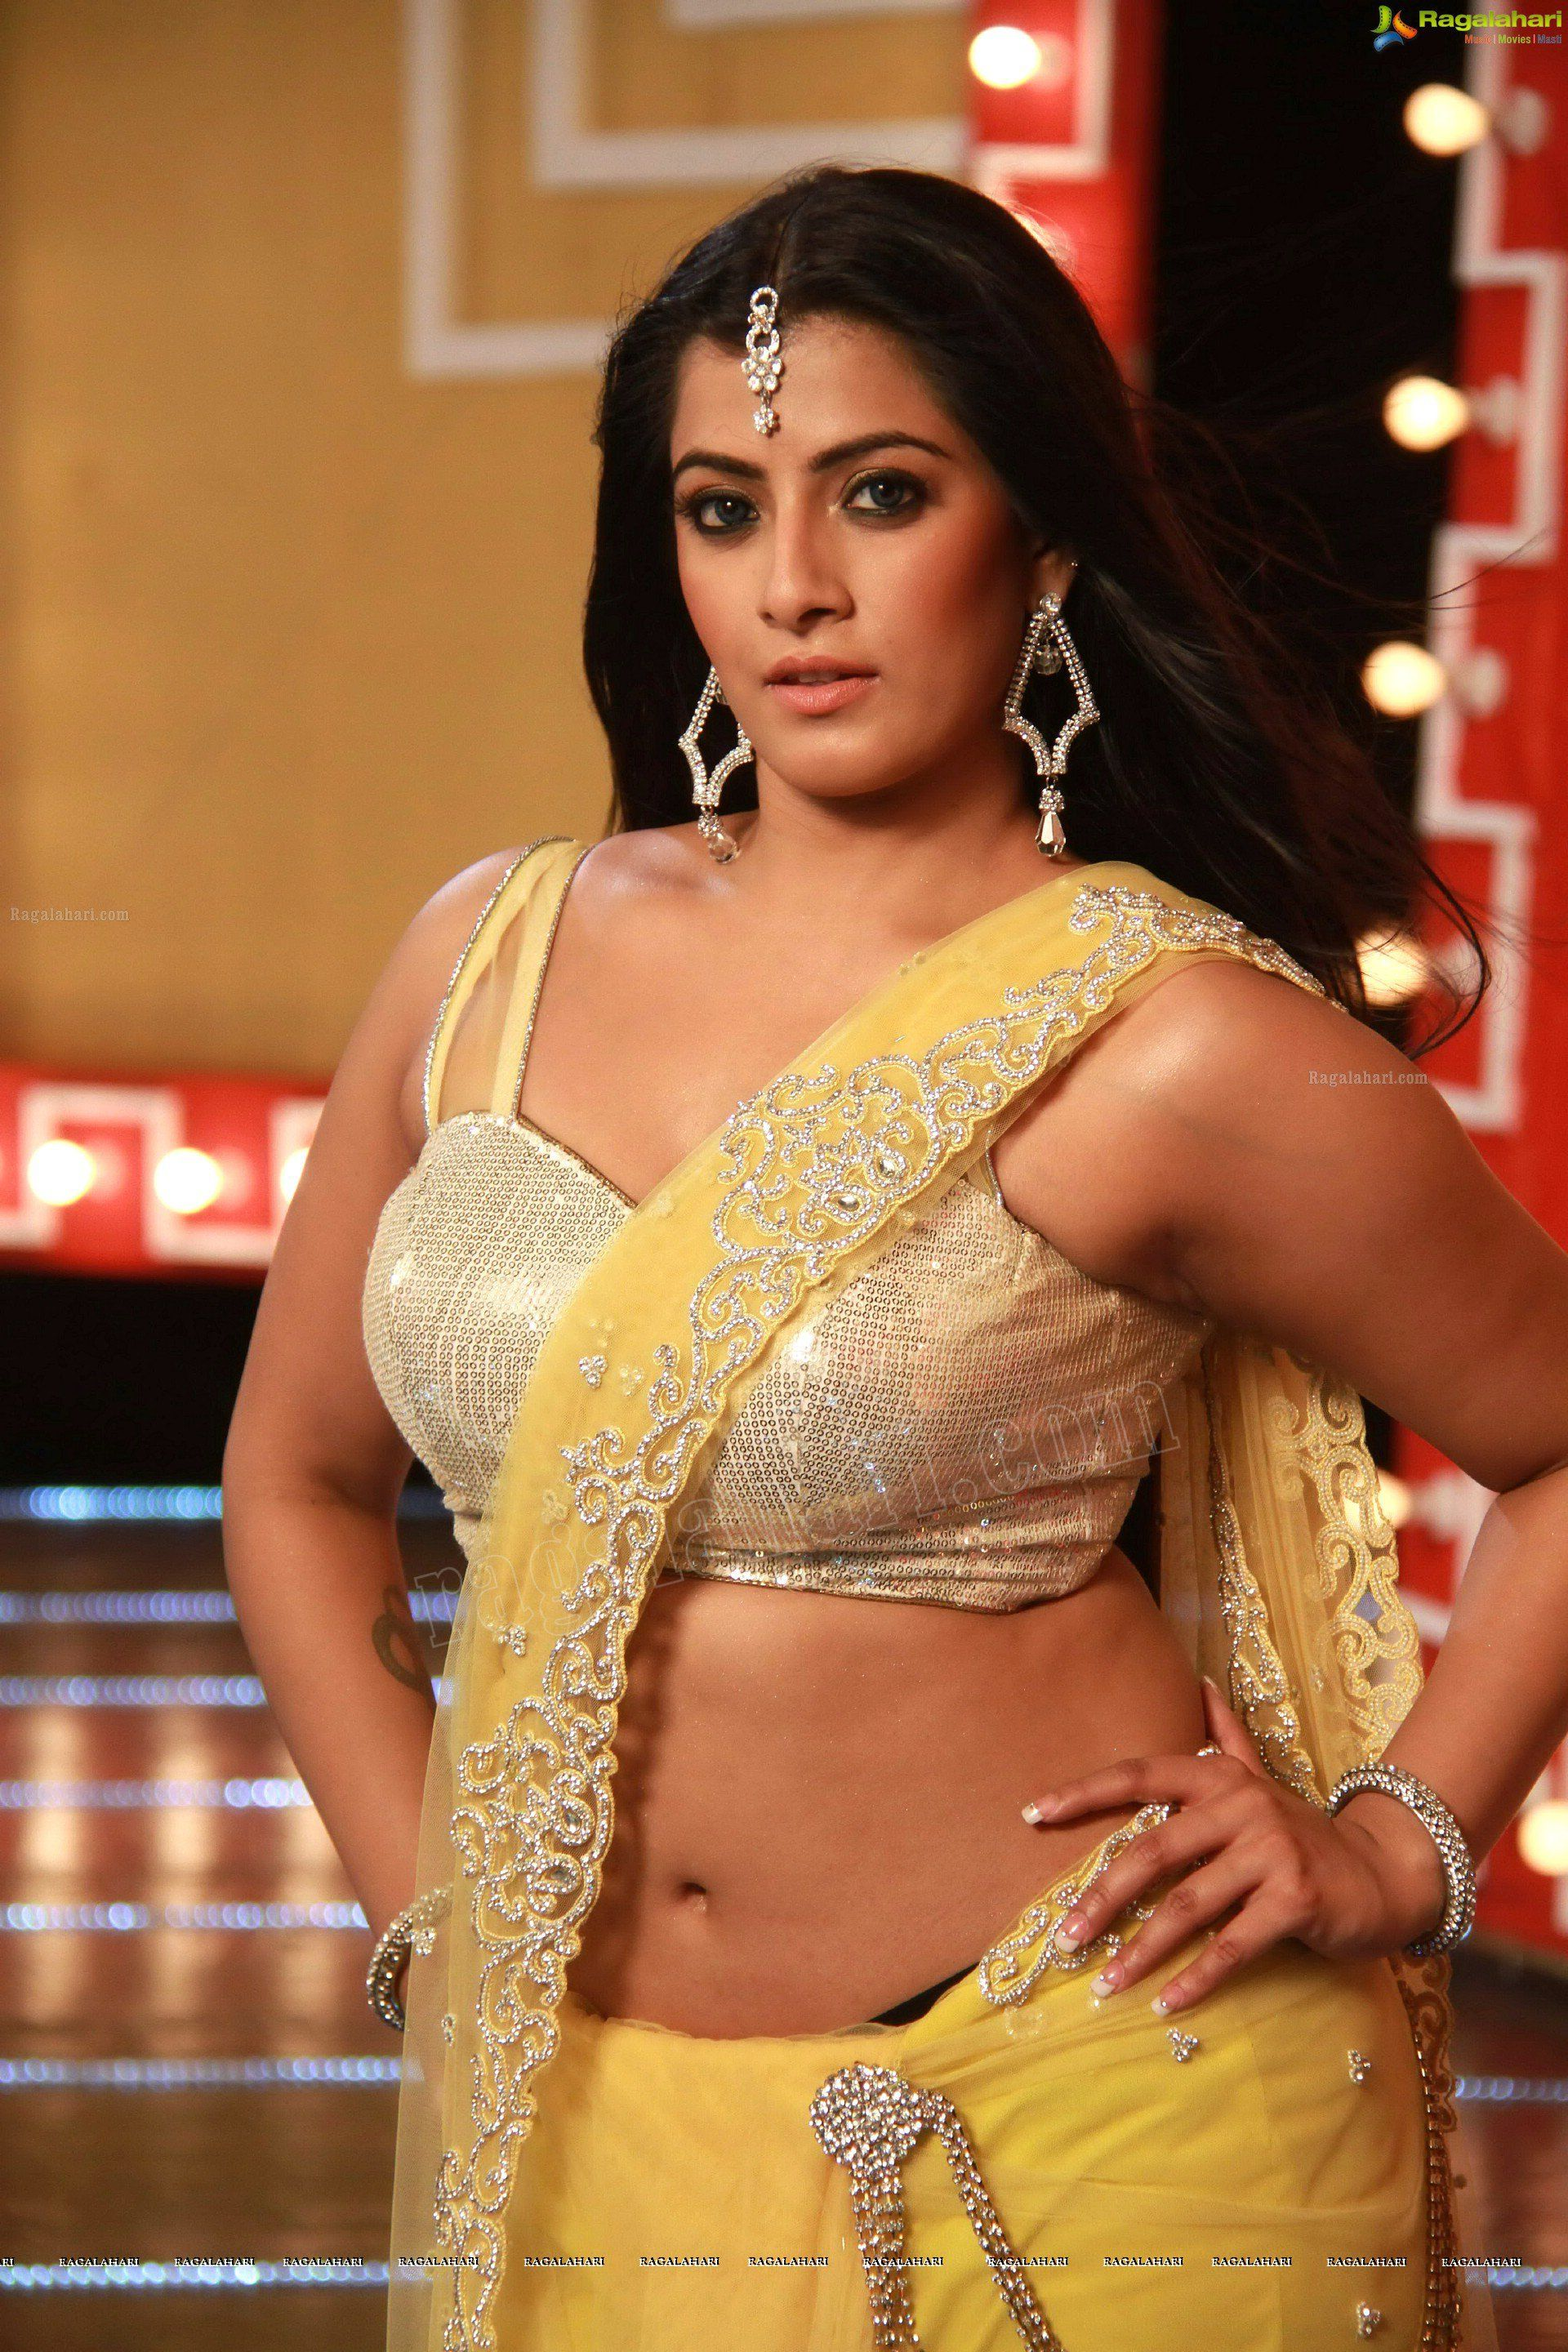 Hot hd wallpapers of tollywood actress